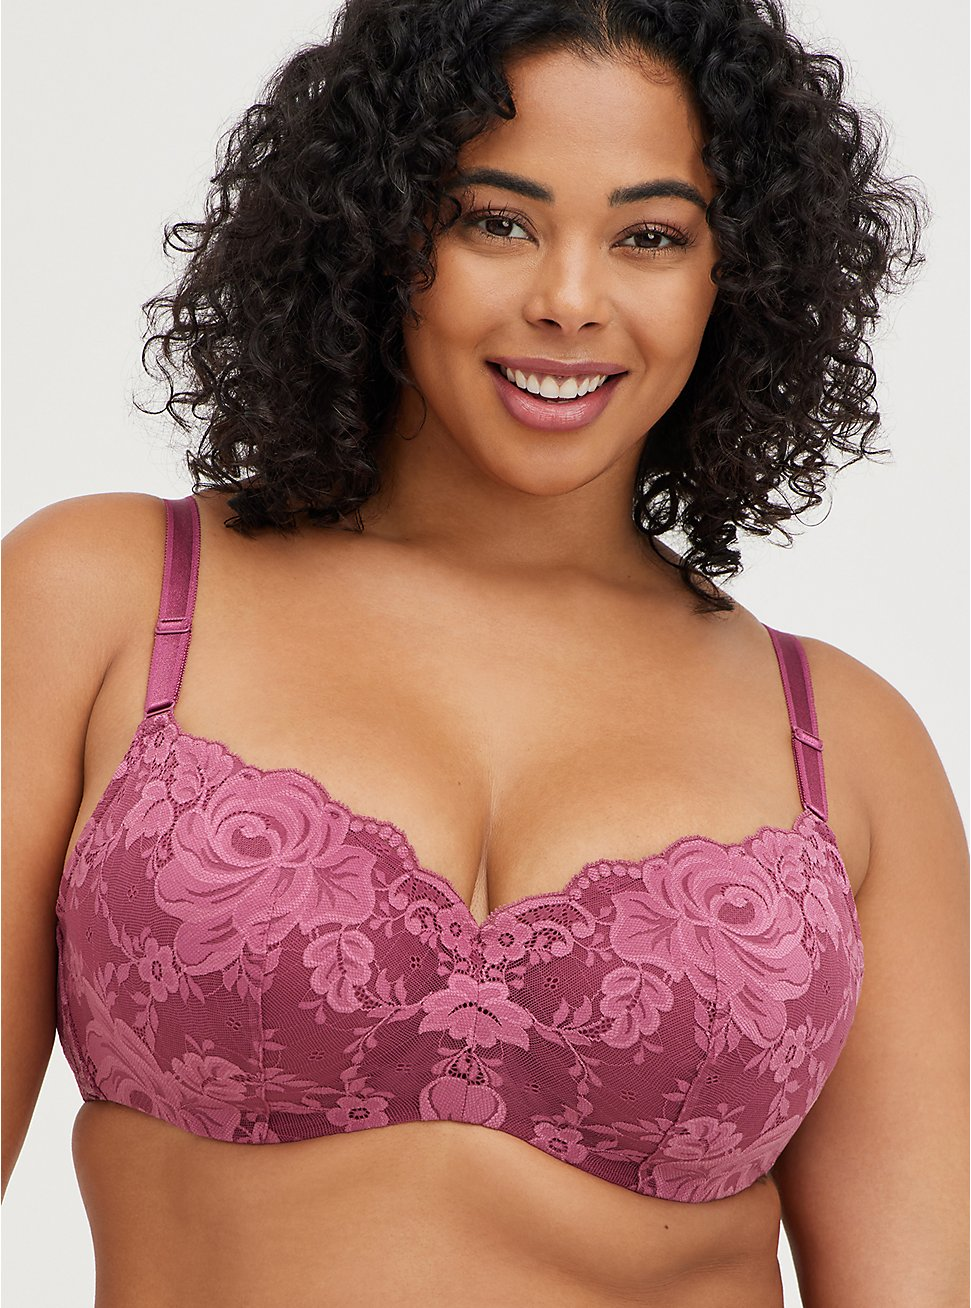 Plus Size Full Coverage Balconette Bra - Lace Pink with 360° Back Smoothing™ , VIOLET QUARTZ, hi-res